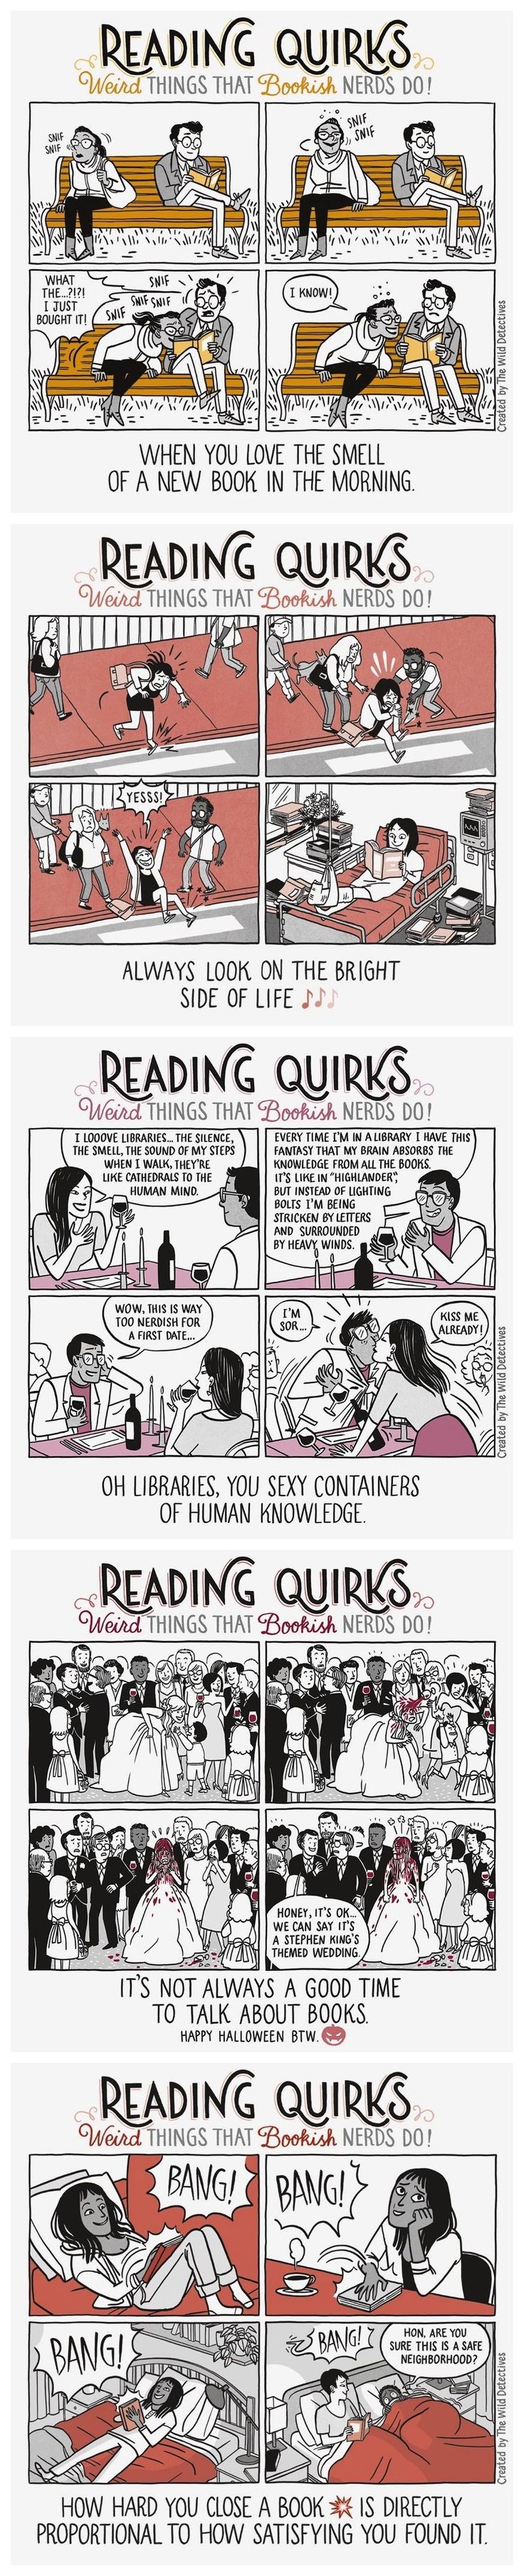 What's your favorite episode of the Reading Quirks webcomic?